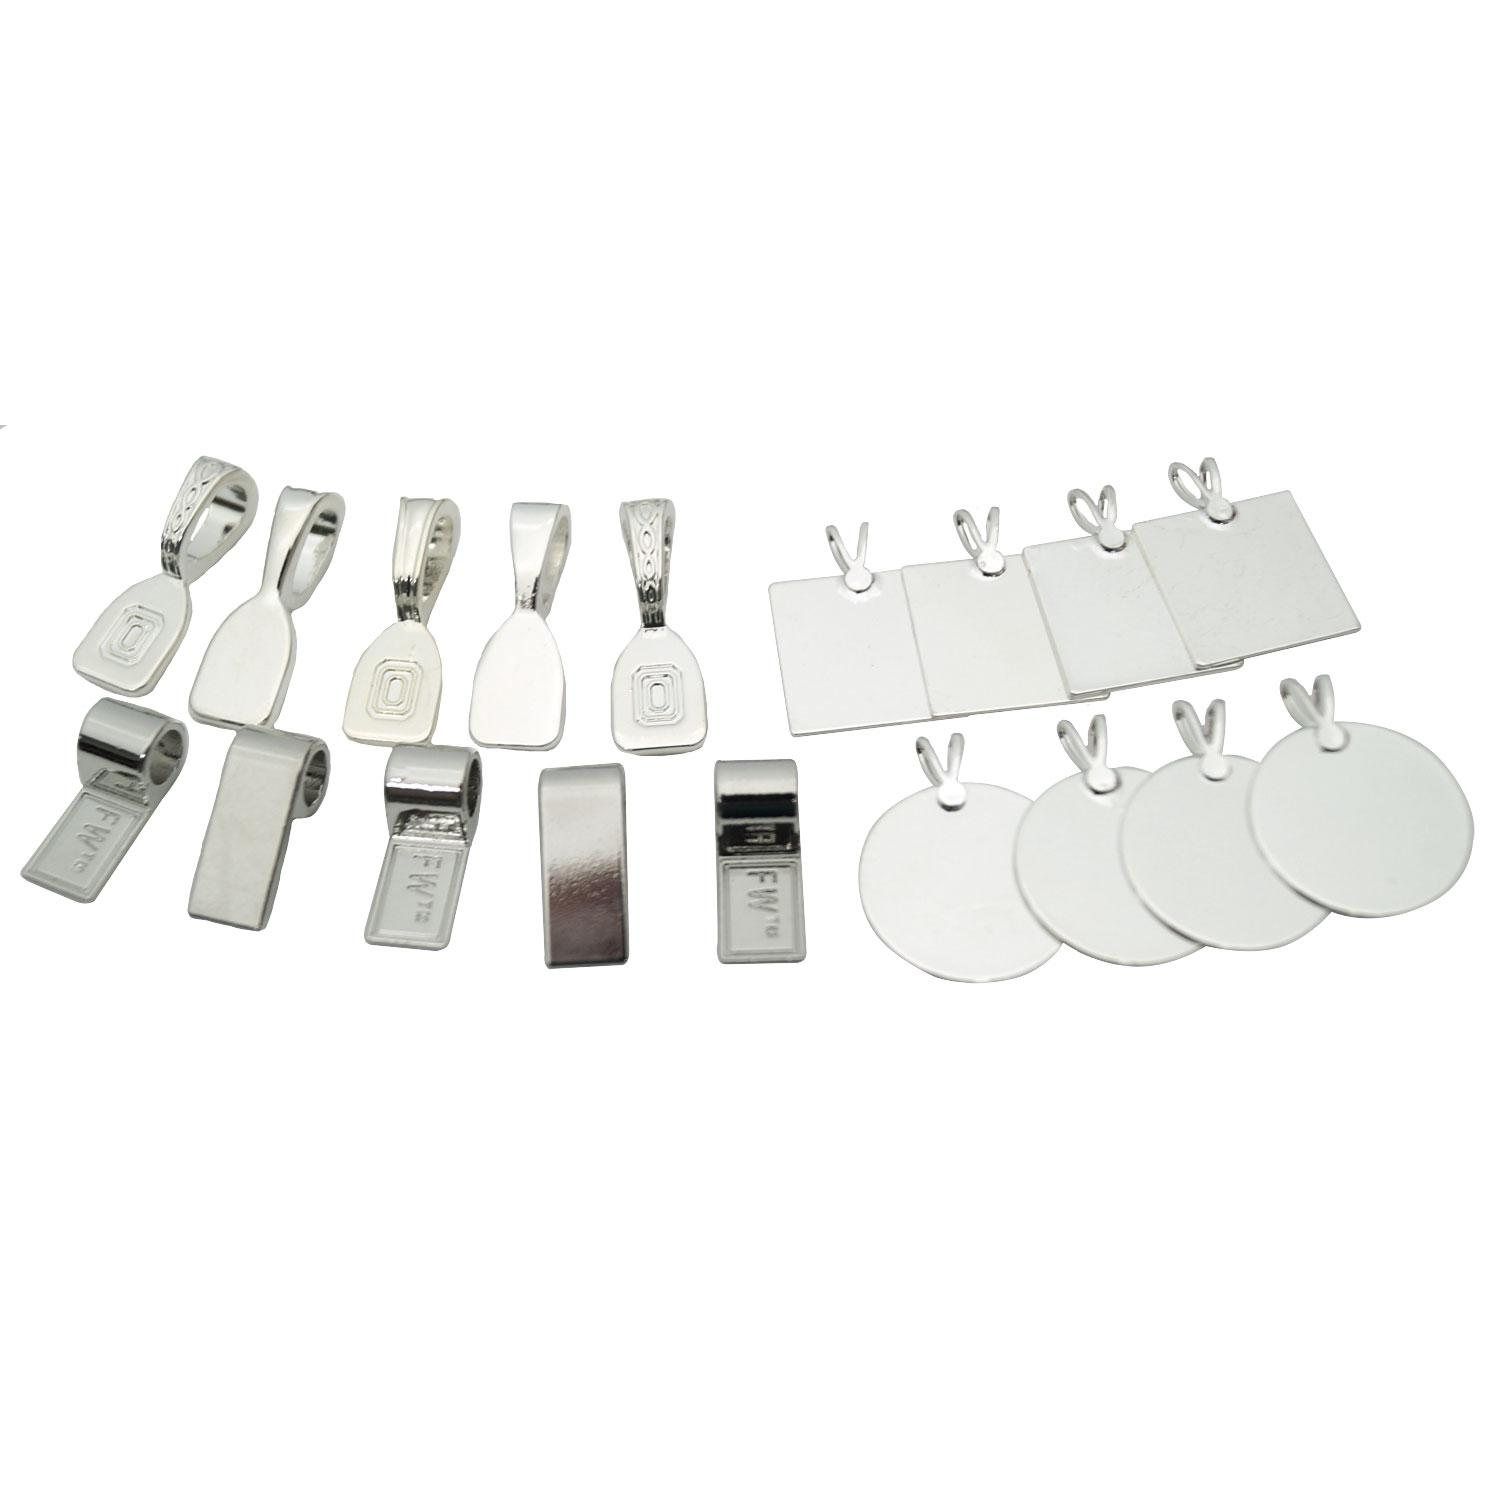 Silver Jewelry Findings - 18 Piece Assortment